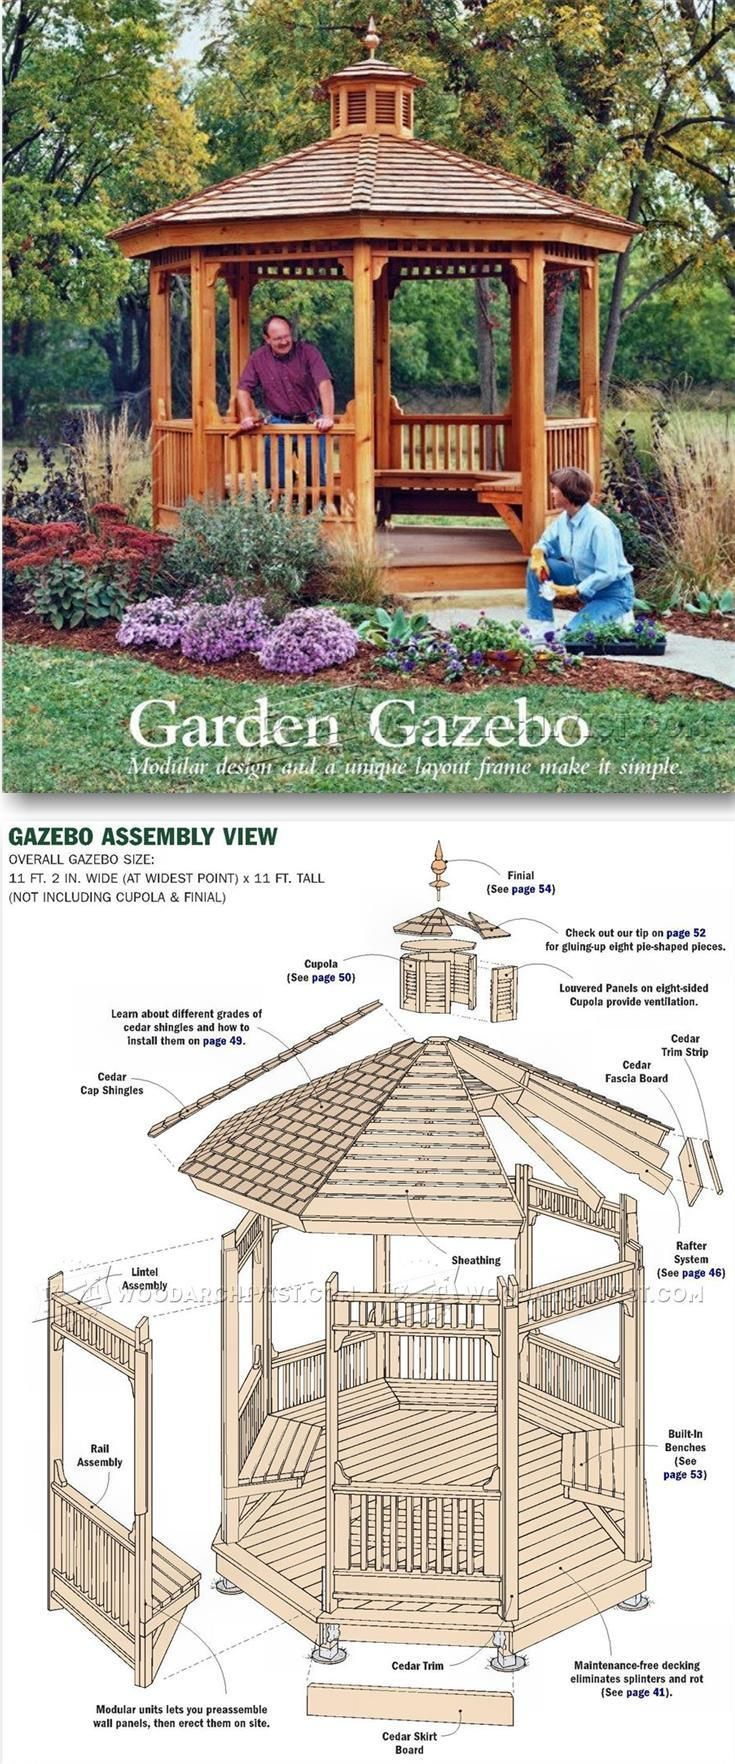 woodworking project plans for beginners. garden gazebo plans - outdoor and projects woodwork, woodworking, woodworking plans, project for beginners f